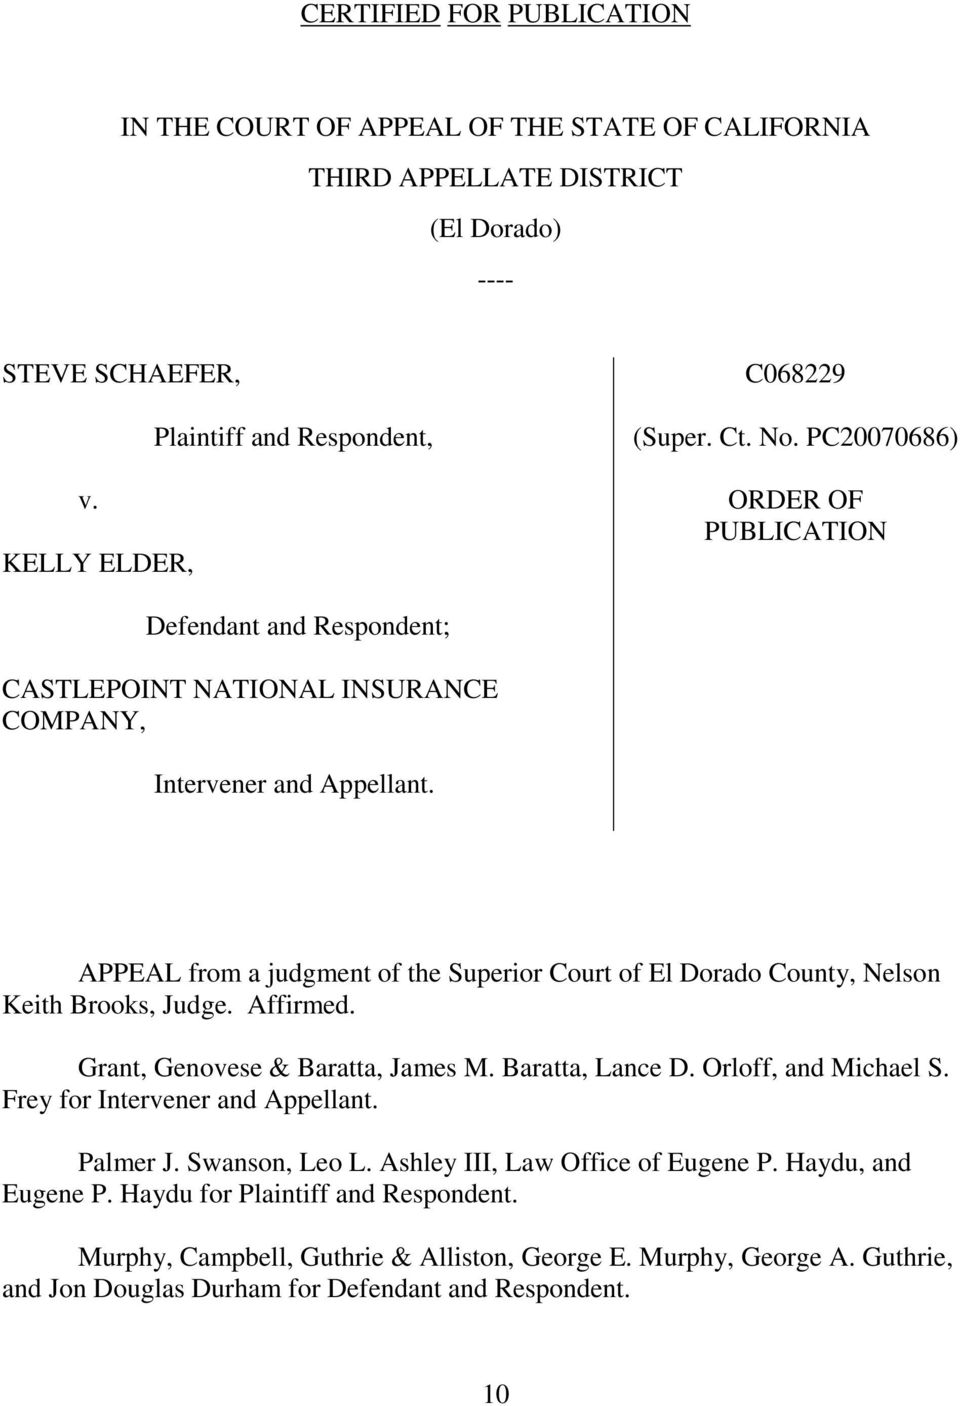 APPEAL from a judgment of the Superior Court of El Dorado County, Nelson Keith Brooks, Judge. Affirmed. Grant, Genovese & Baratta, James M. Baratta, Lance D. Orloff, and Michael S.